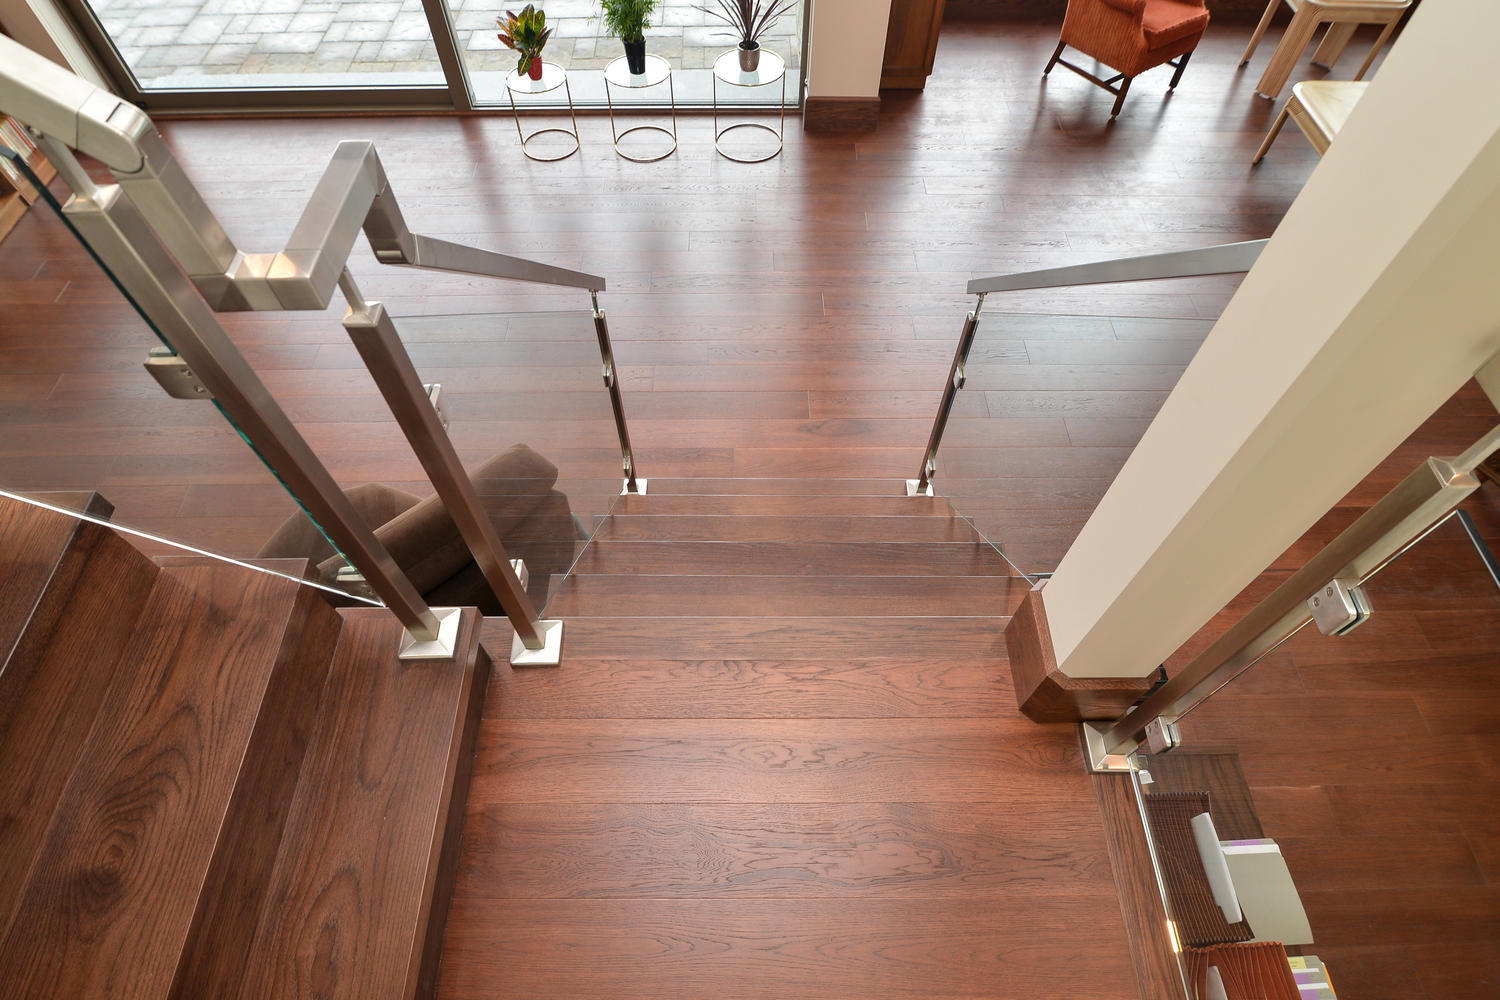 Hickory Wood Flooring flooring down a staircase